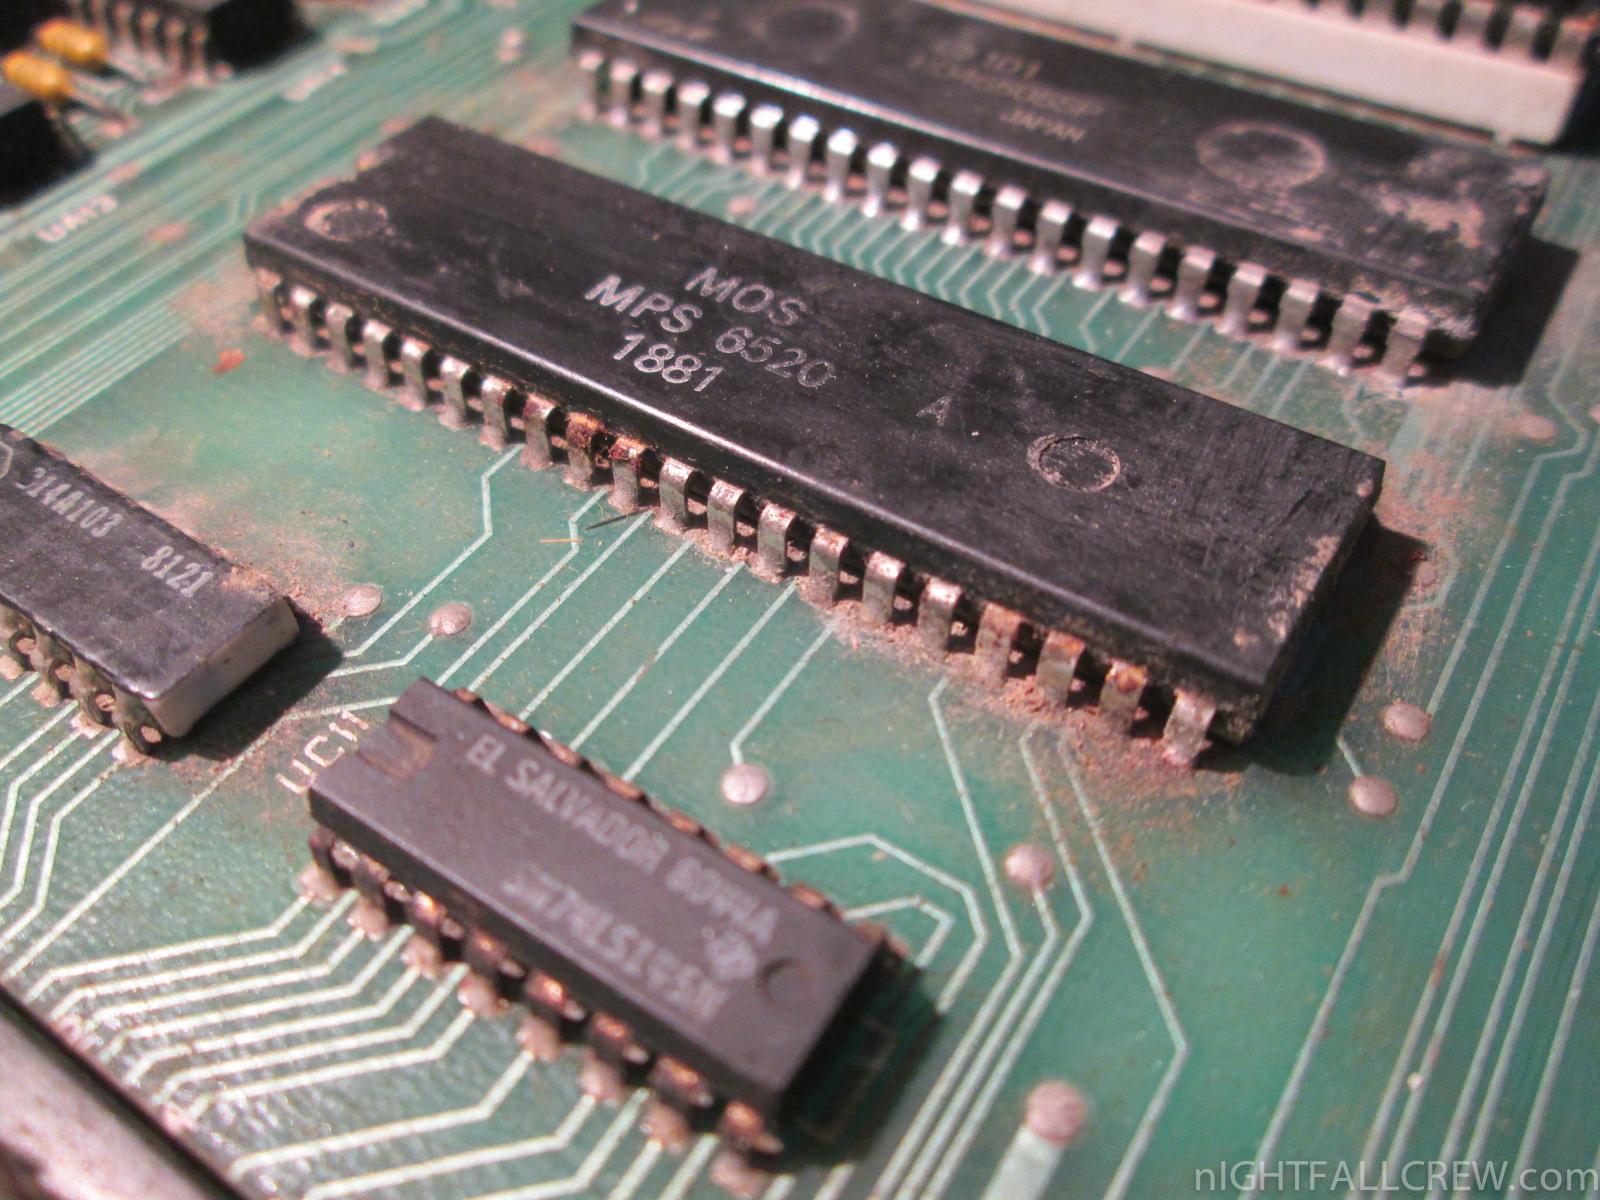 Repair & Cleaning a rusty Motherboard of a Commodore CBM 8032